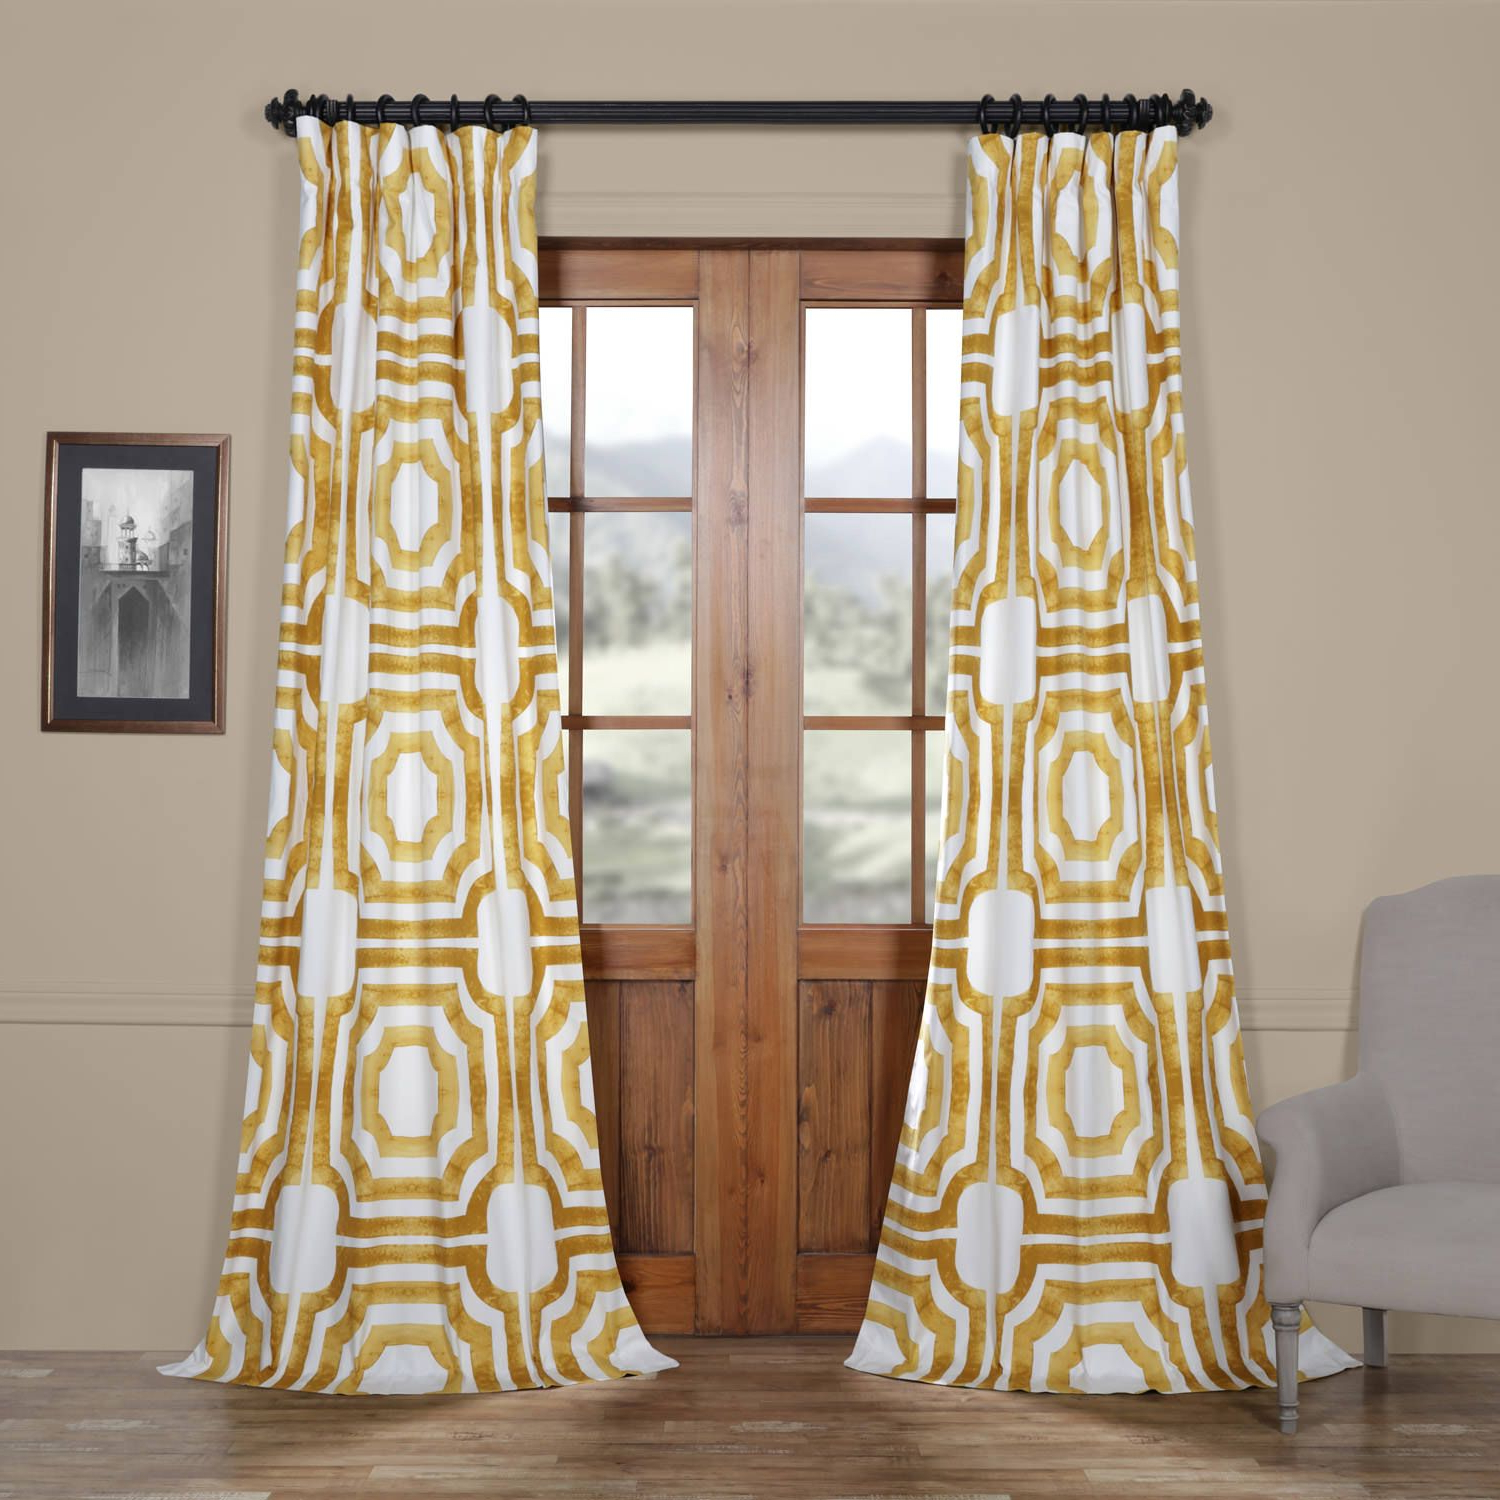 Mecca Gold Printed Cotton Curtain (View 10 of 21)